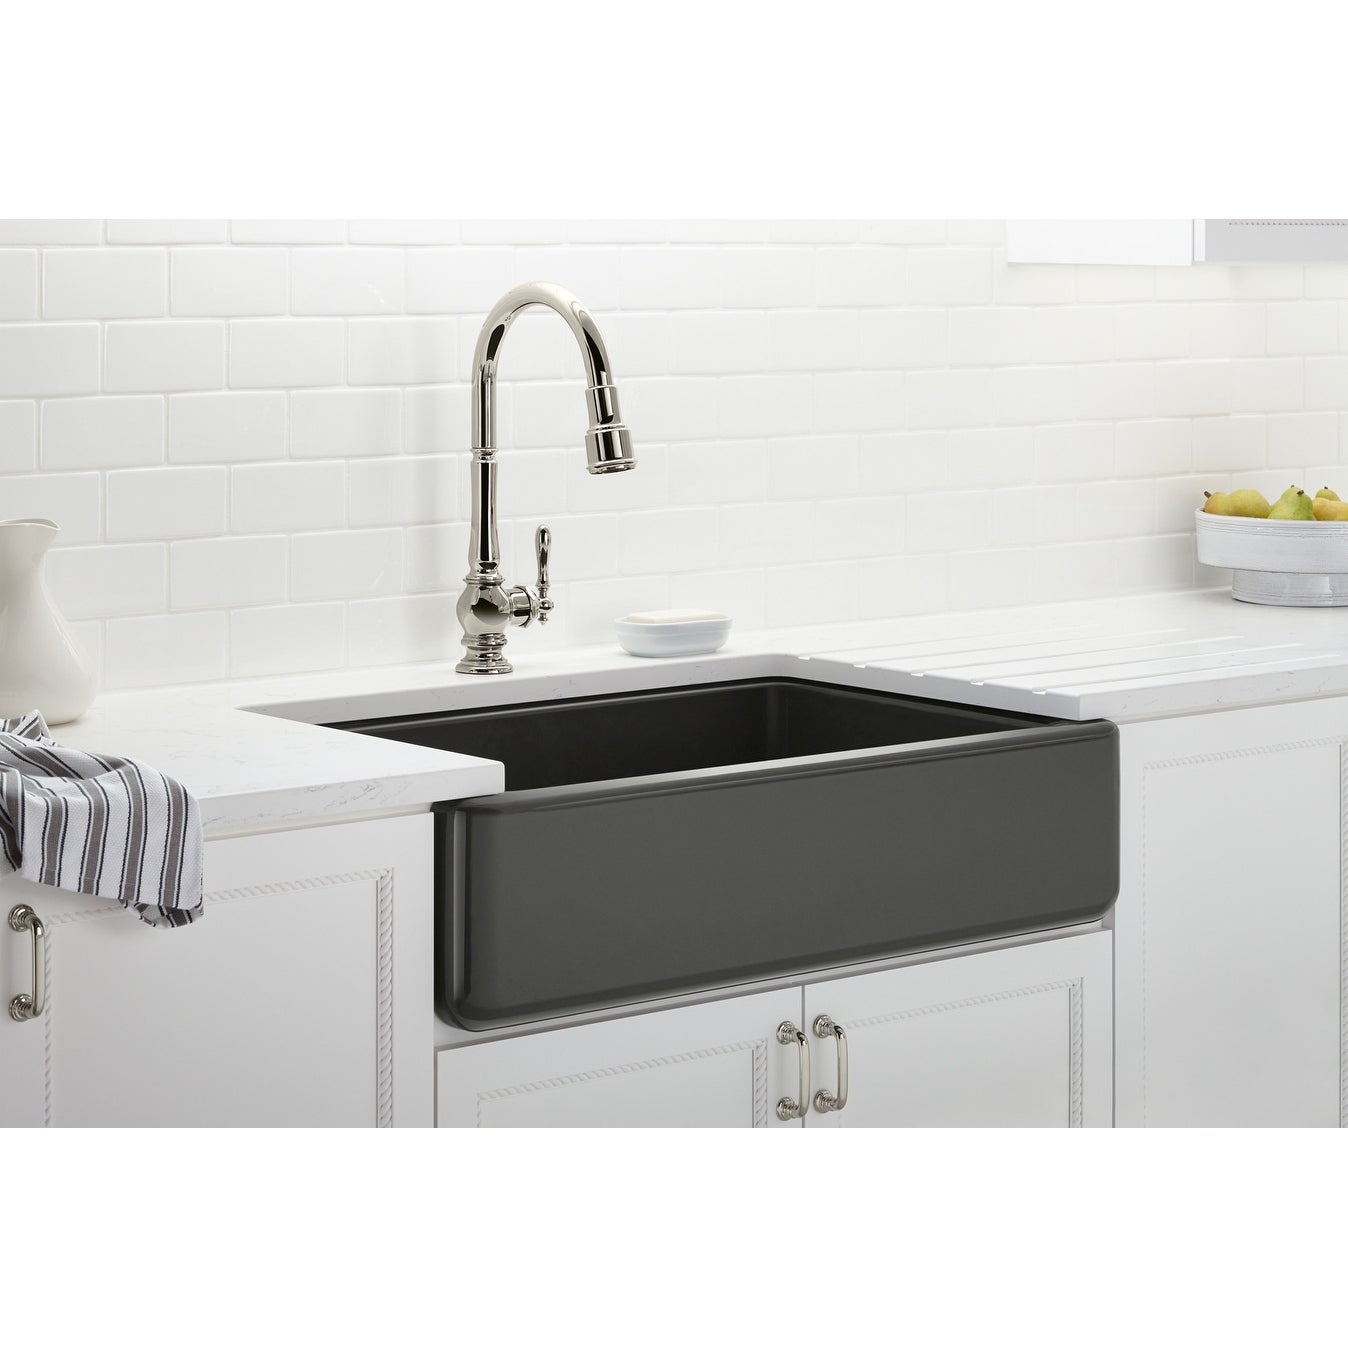 Kohler K 6489 Whitehaven 36 Single Basin Undermount Enameled Cast Iron Kitchen Sink With Self T A Front